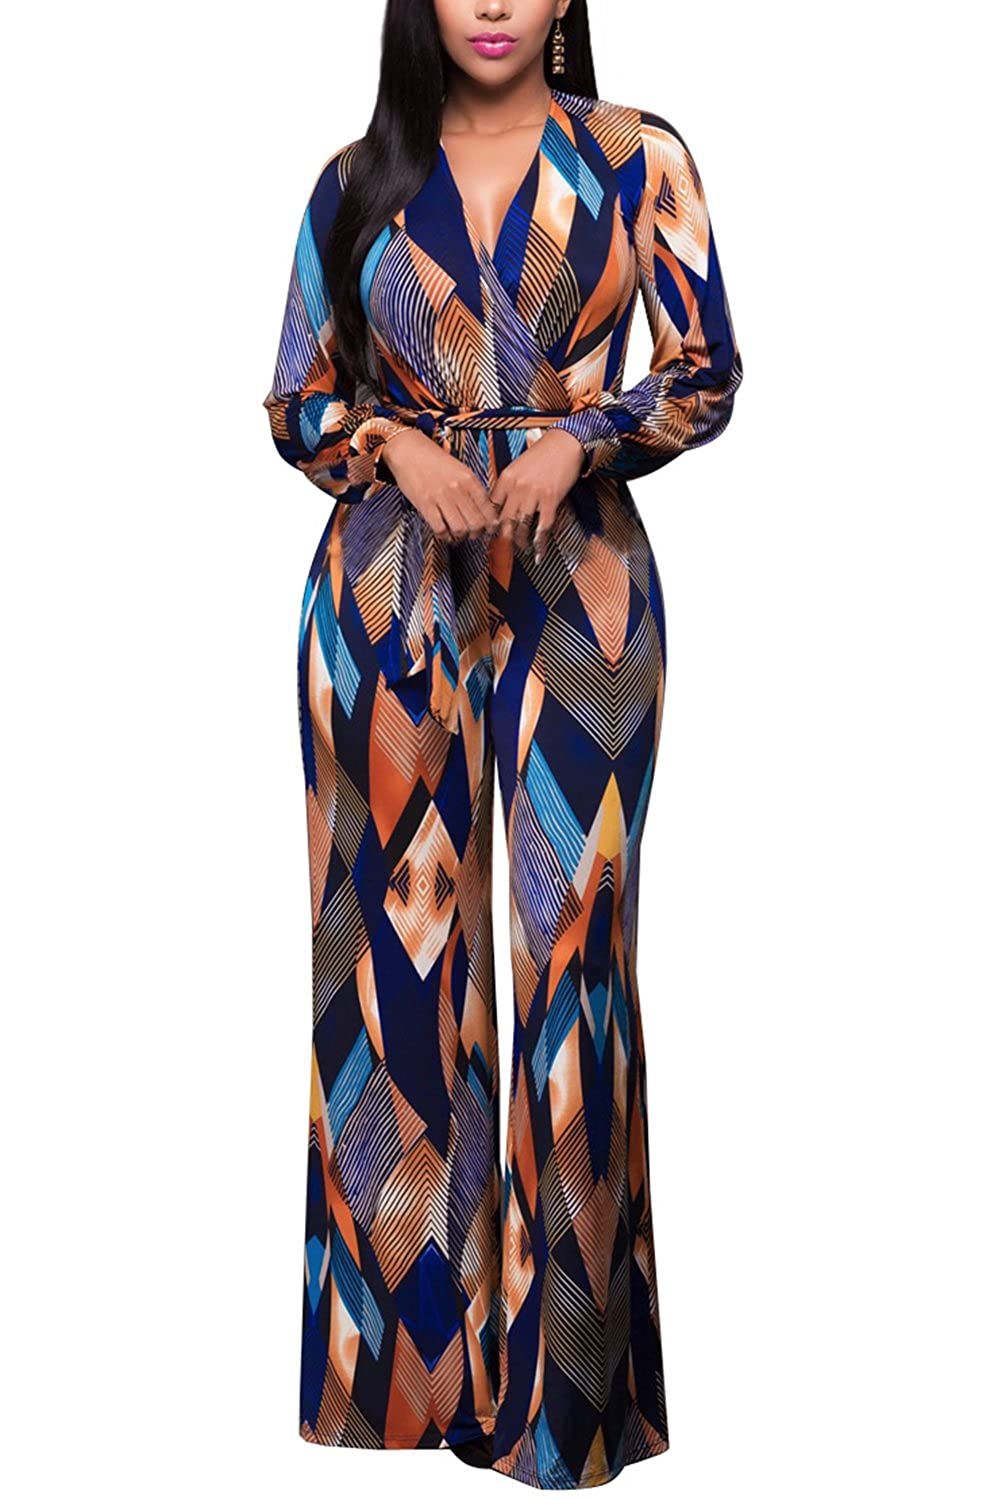 Women Casual Long Sleeve Geometric Print Belted Jumpsuit Loose Palazzo Pants CANZ1445